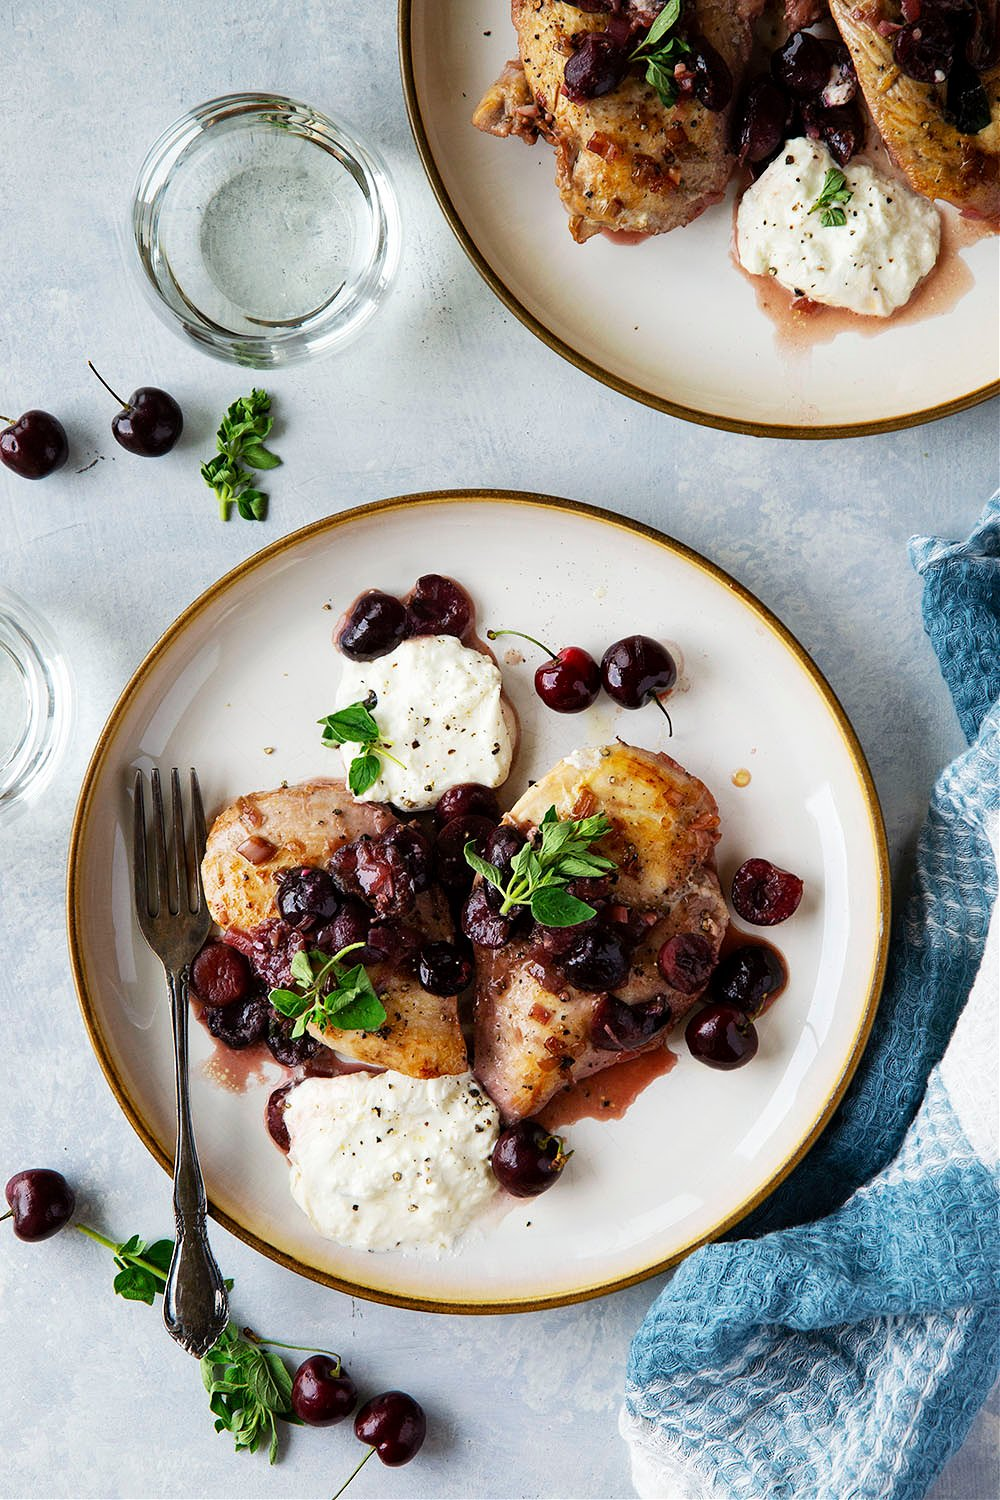 Made in one pan and simmered in juicy cherries and a white wine sauce, this skillet cherry chicken is quick to make and tastes like summer in a pan!